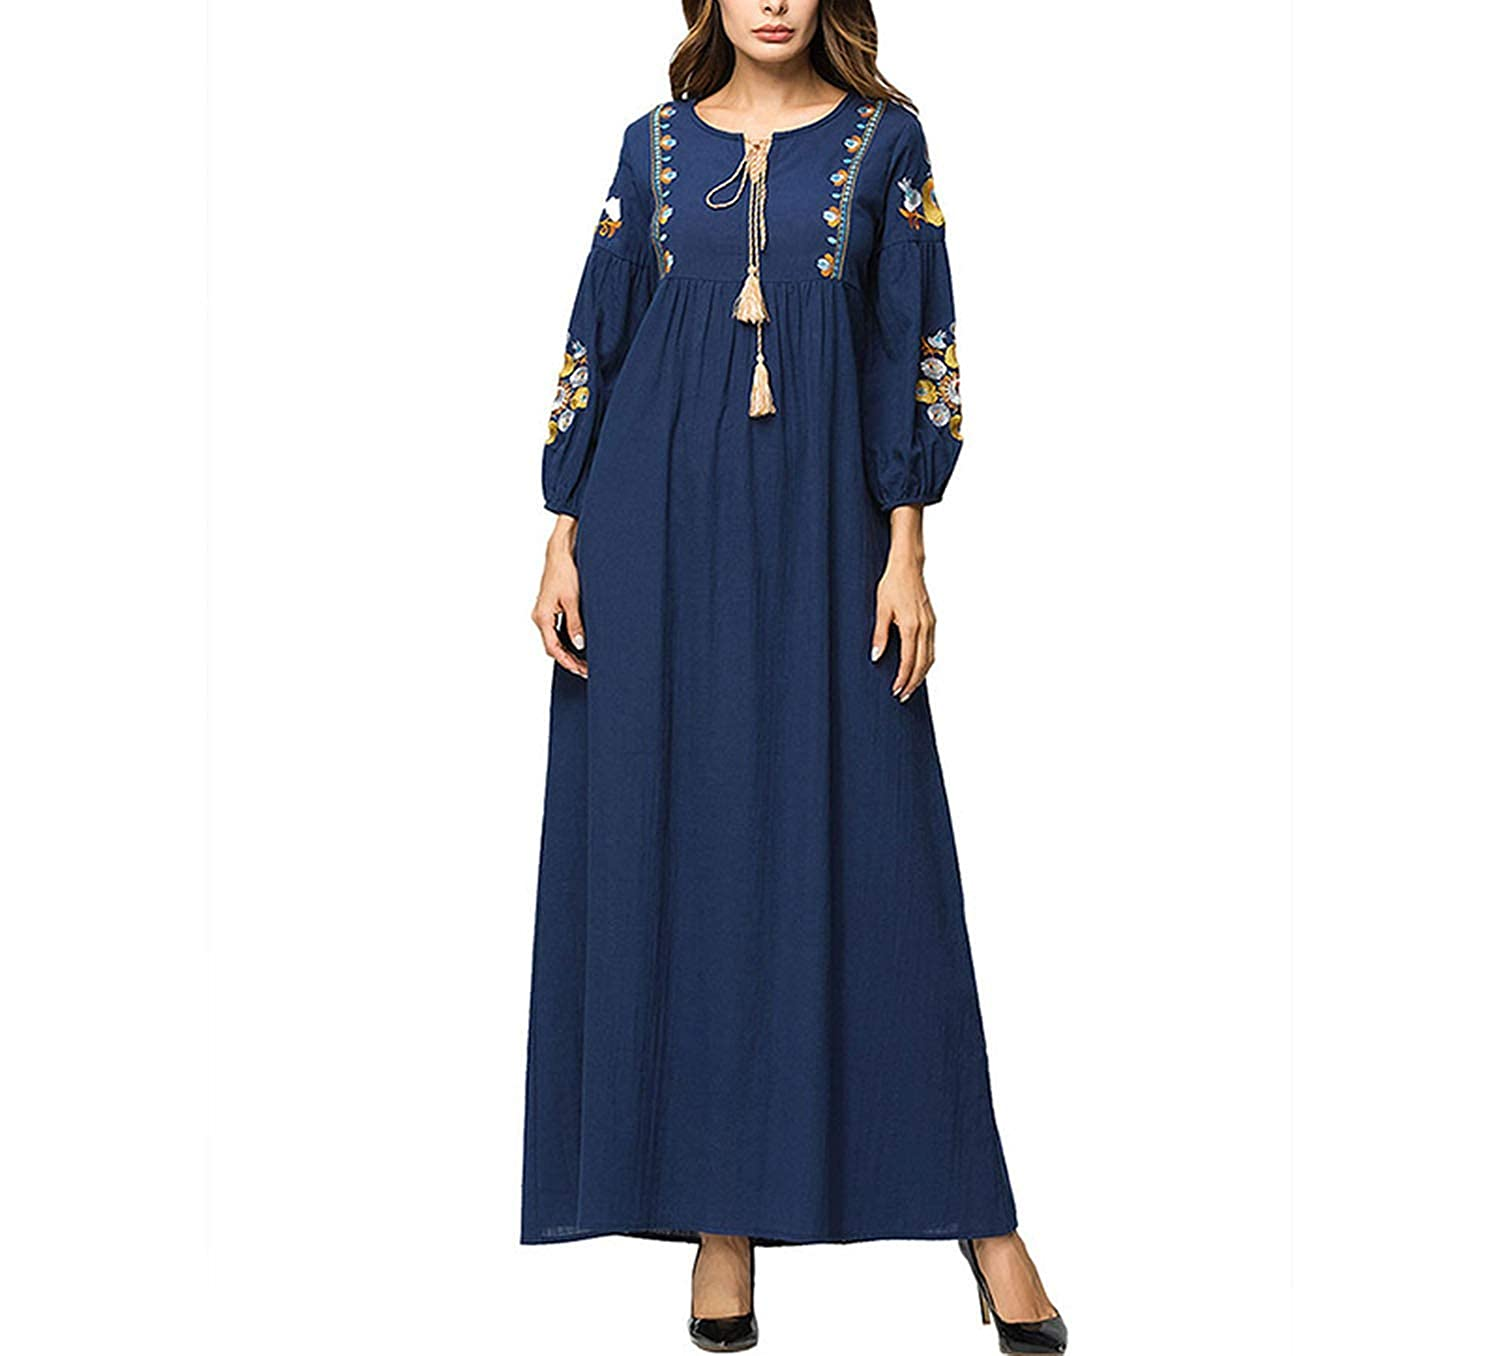 Navy bluee dress Maxi Long Dress Women Elegant Vintage Floral Embroidery Long Sleeve Dresses Female High Waist